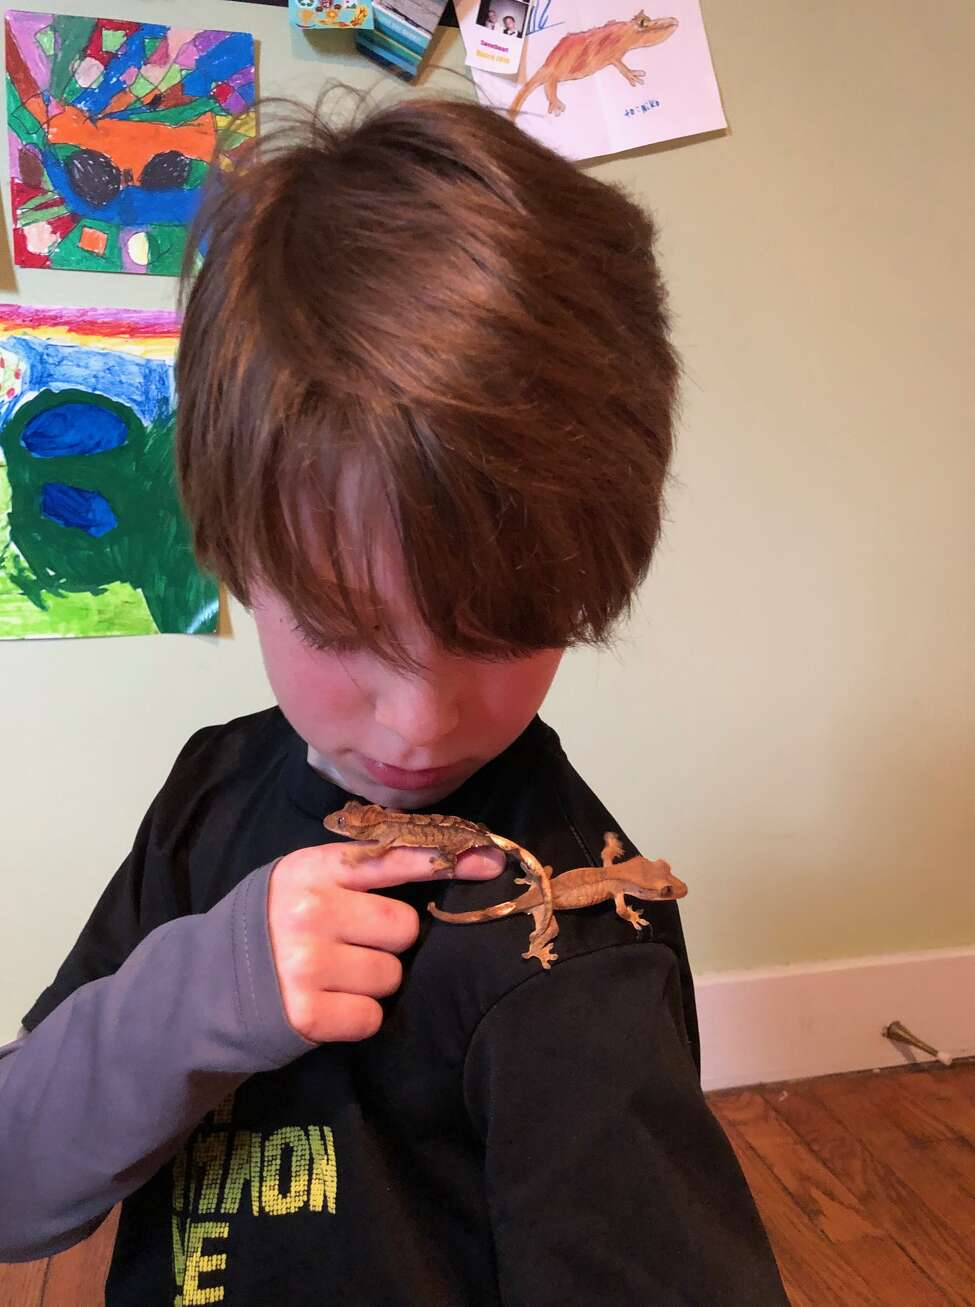 Niko and his two geckos. (Provided)